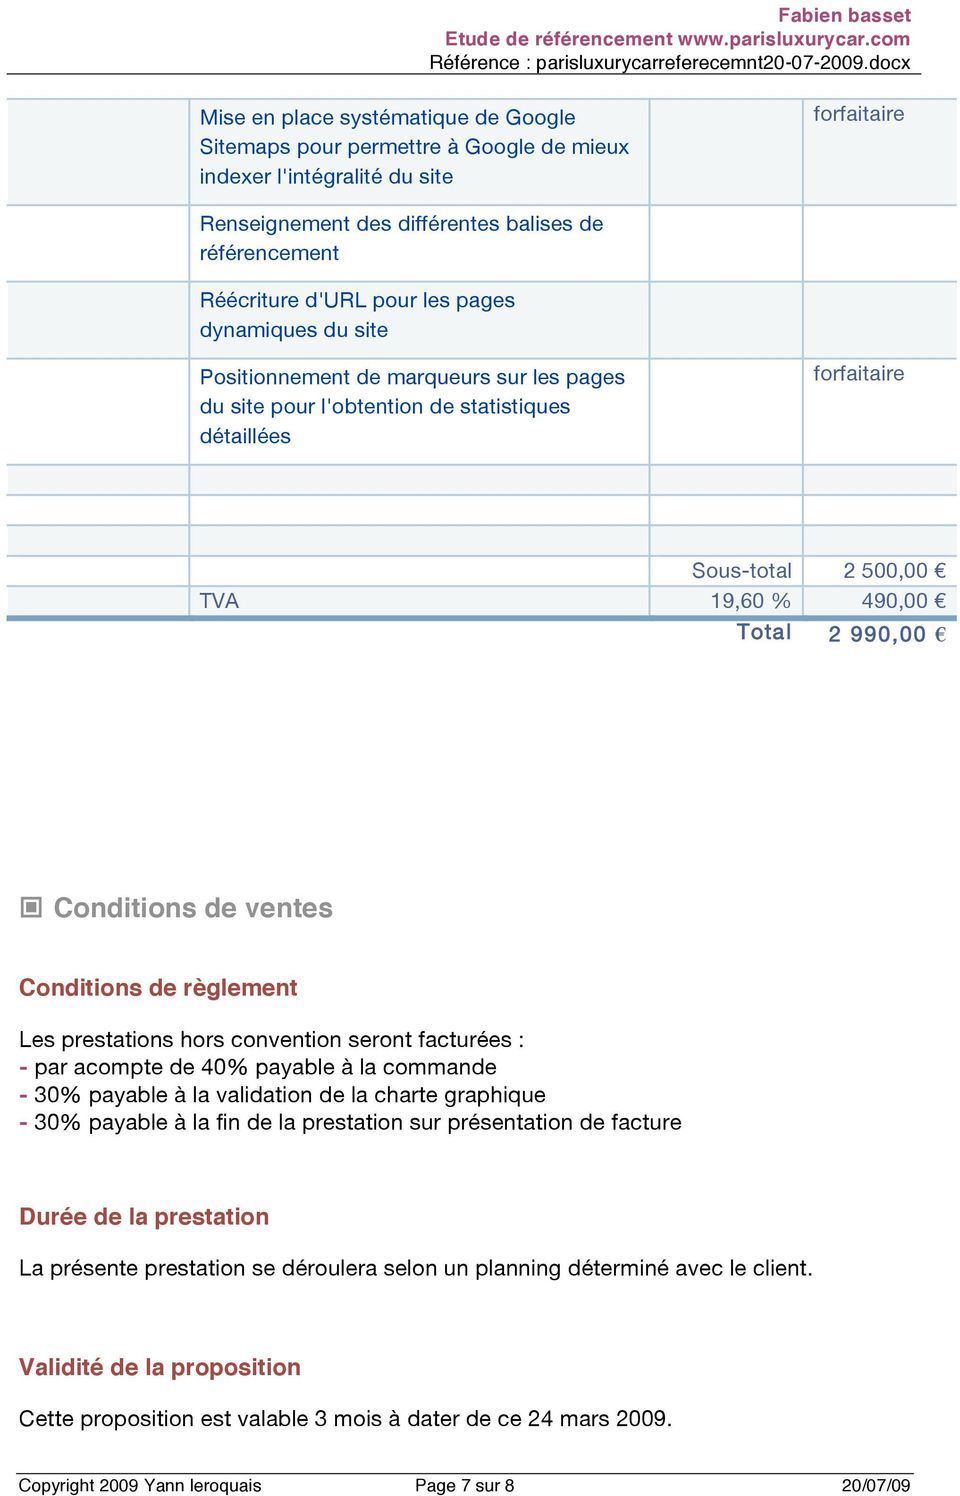 de règlement Les prestations hors convention seront facturées : - par acompte de 40% payable à la commande - 30% payable à la validation de la charte graphique - 30% payable à la fin de la prestation